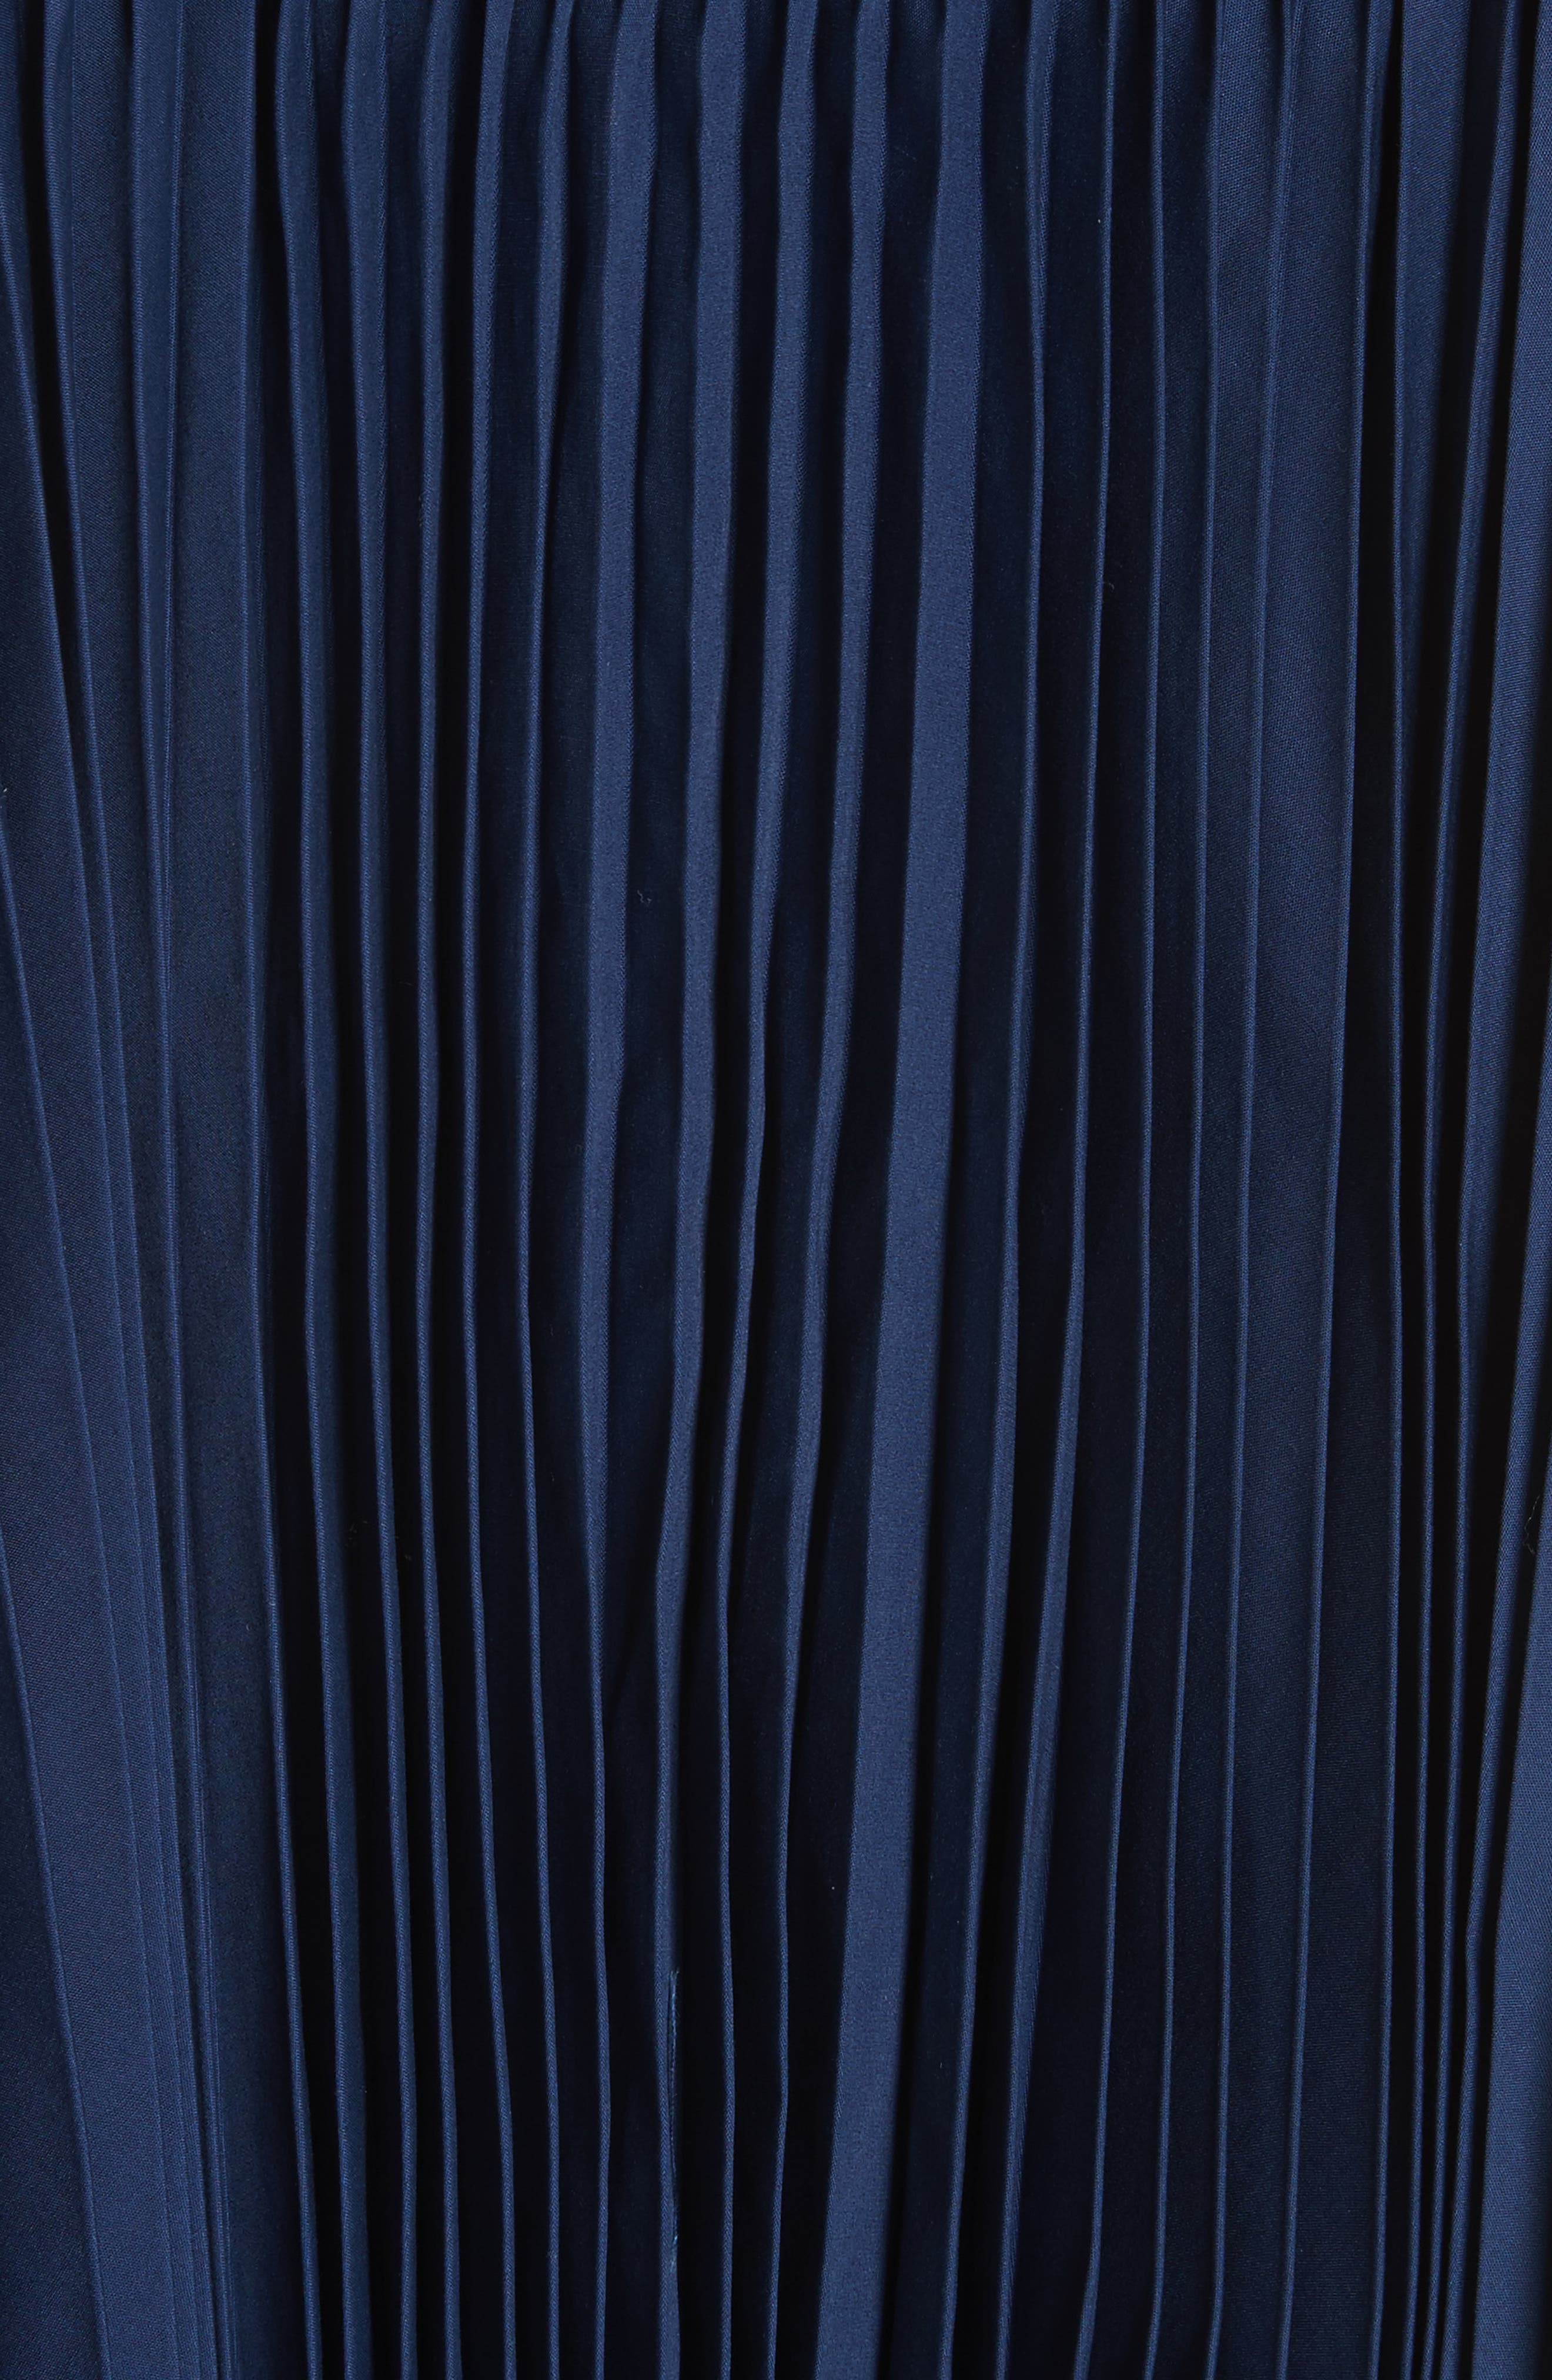 Pleated Trench Coat,                             Alternate thumbnail 6, color,                             Indigo-Blk-Nvy